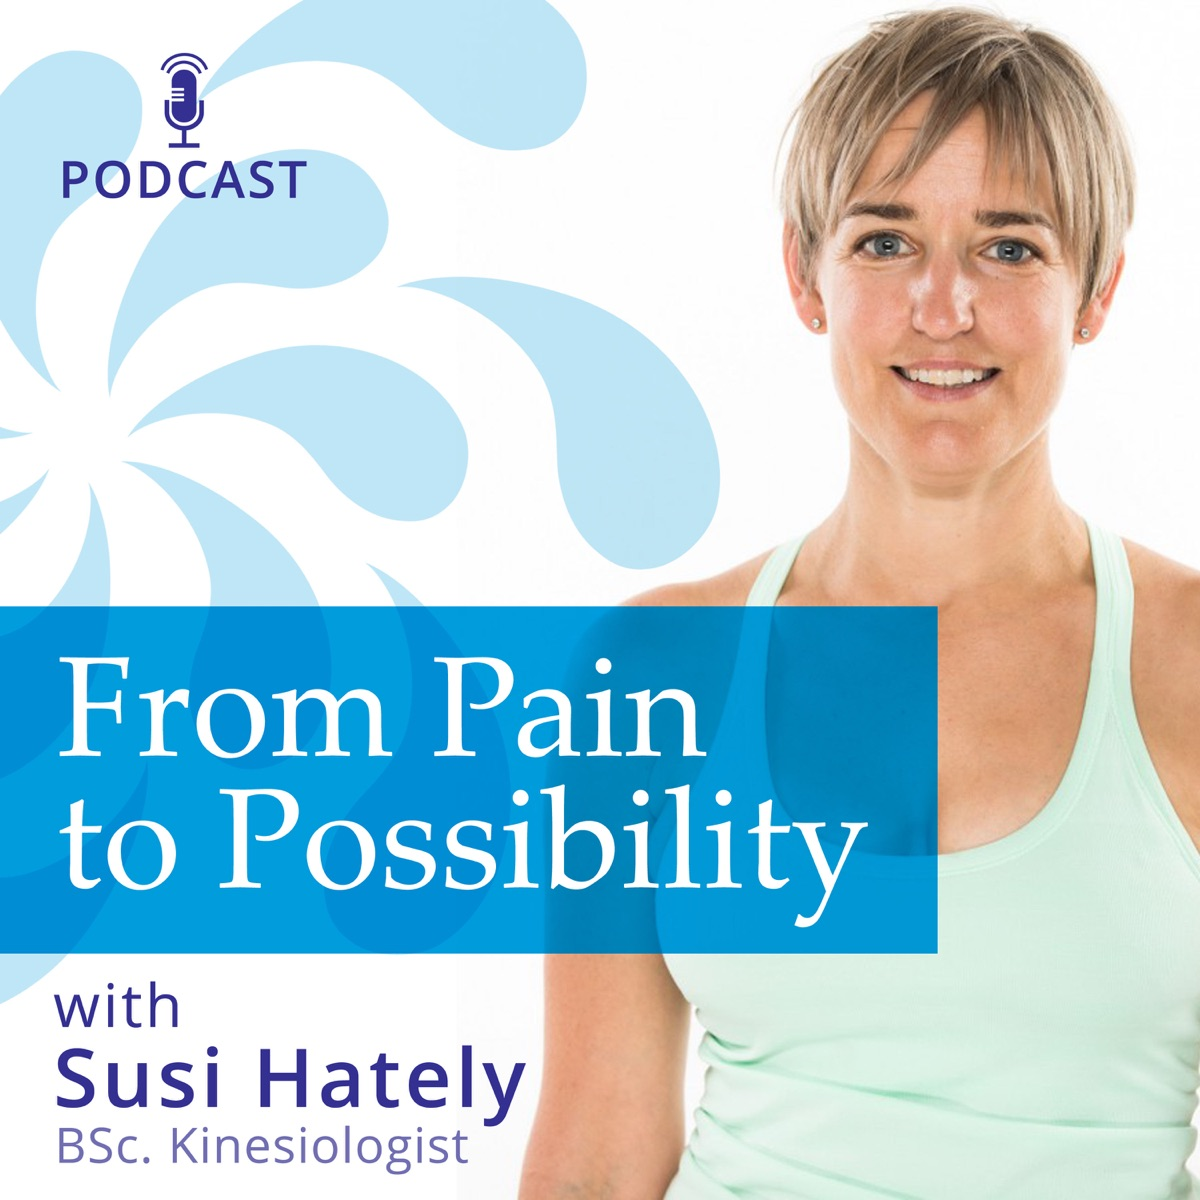 From Pain to Possibility